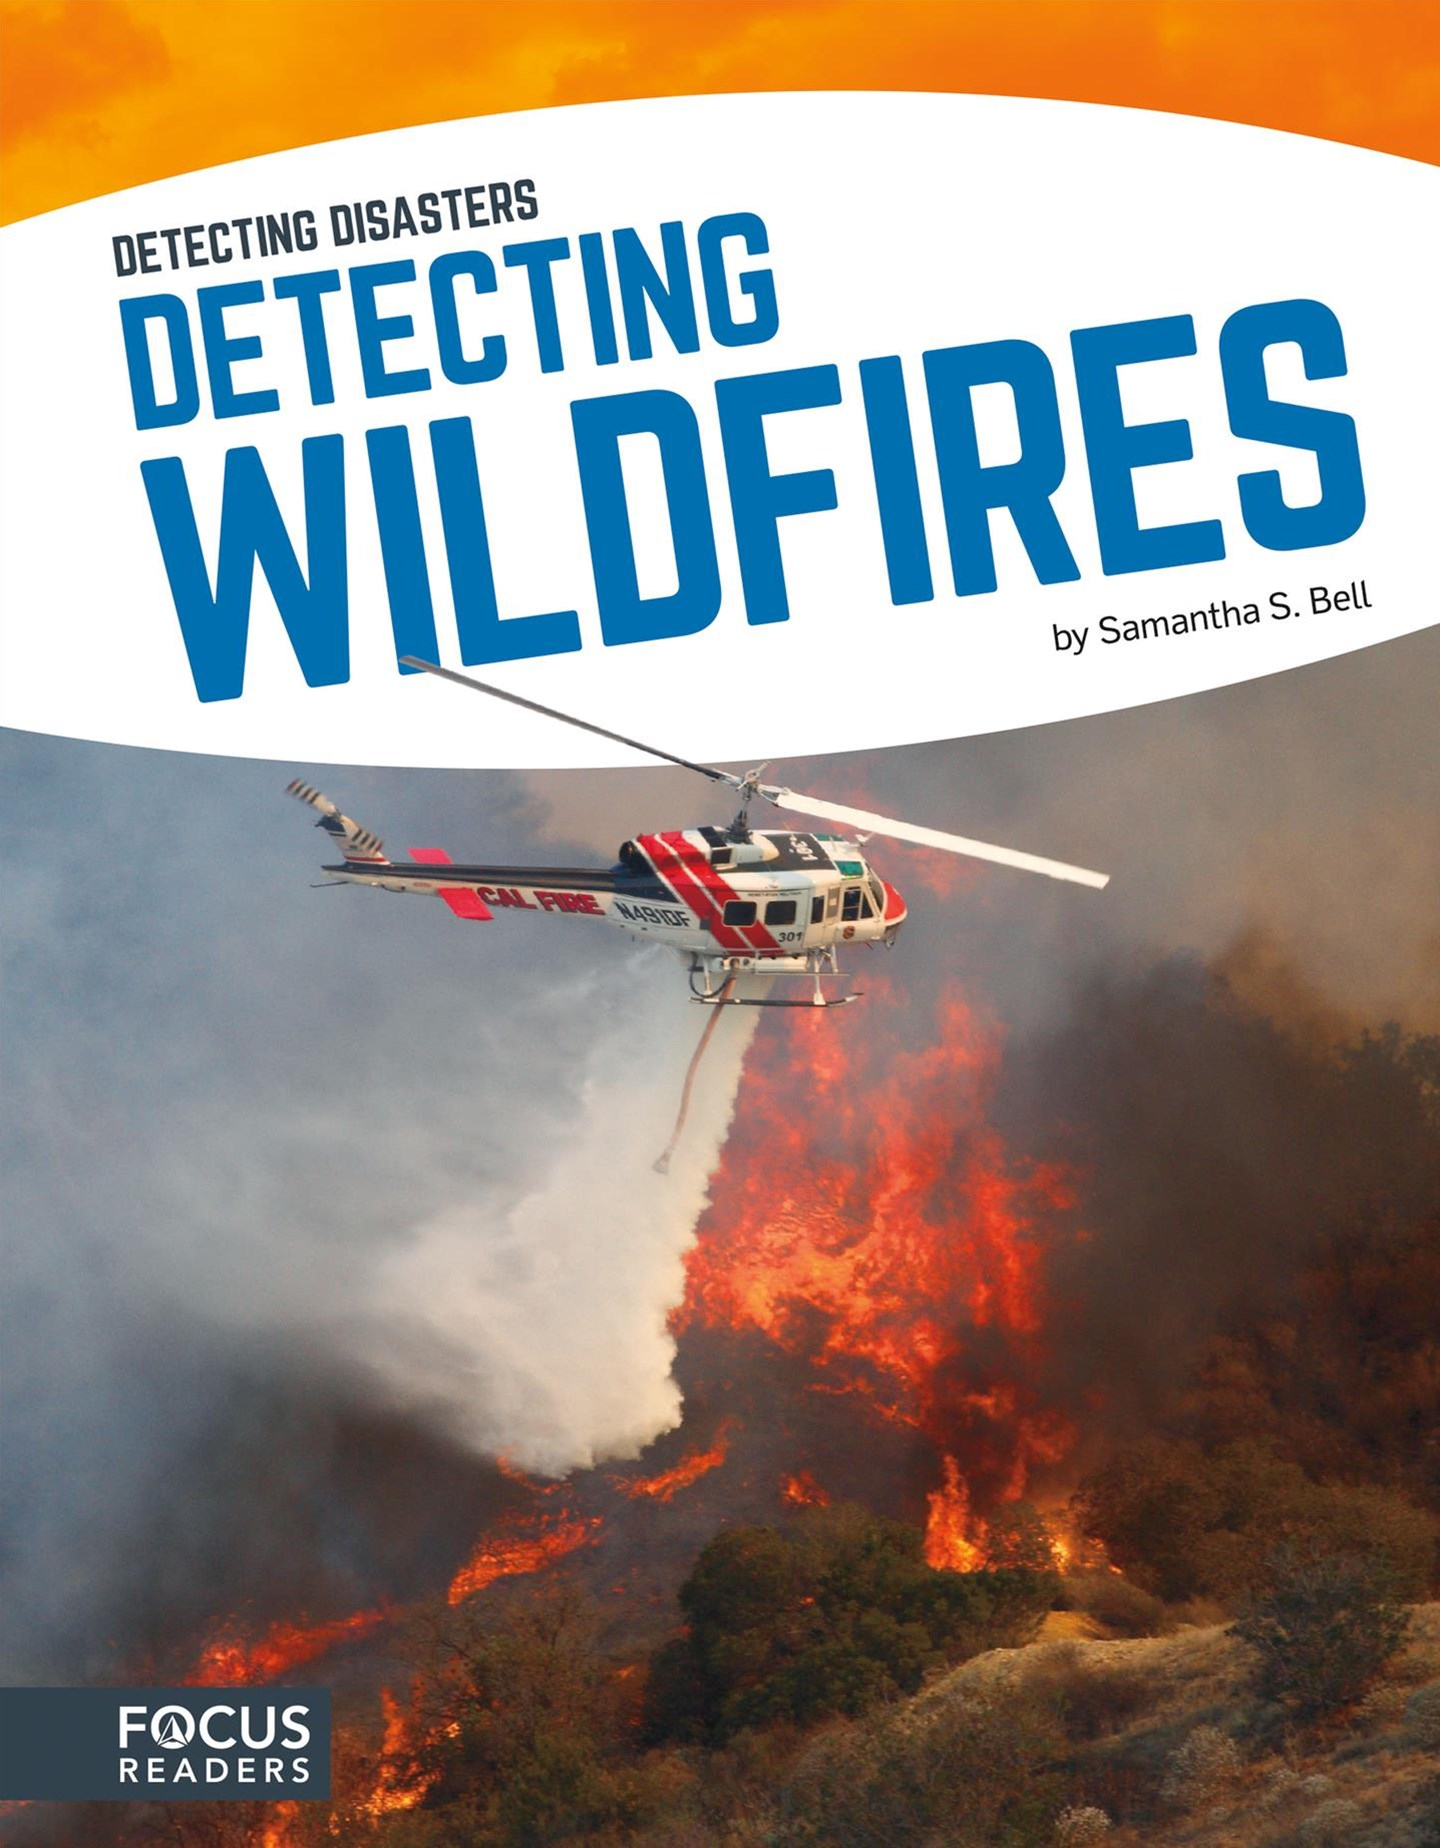 Detecting Diasaters: Detecting Wildfires